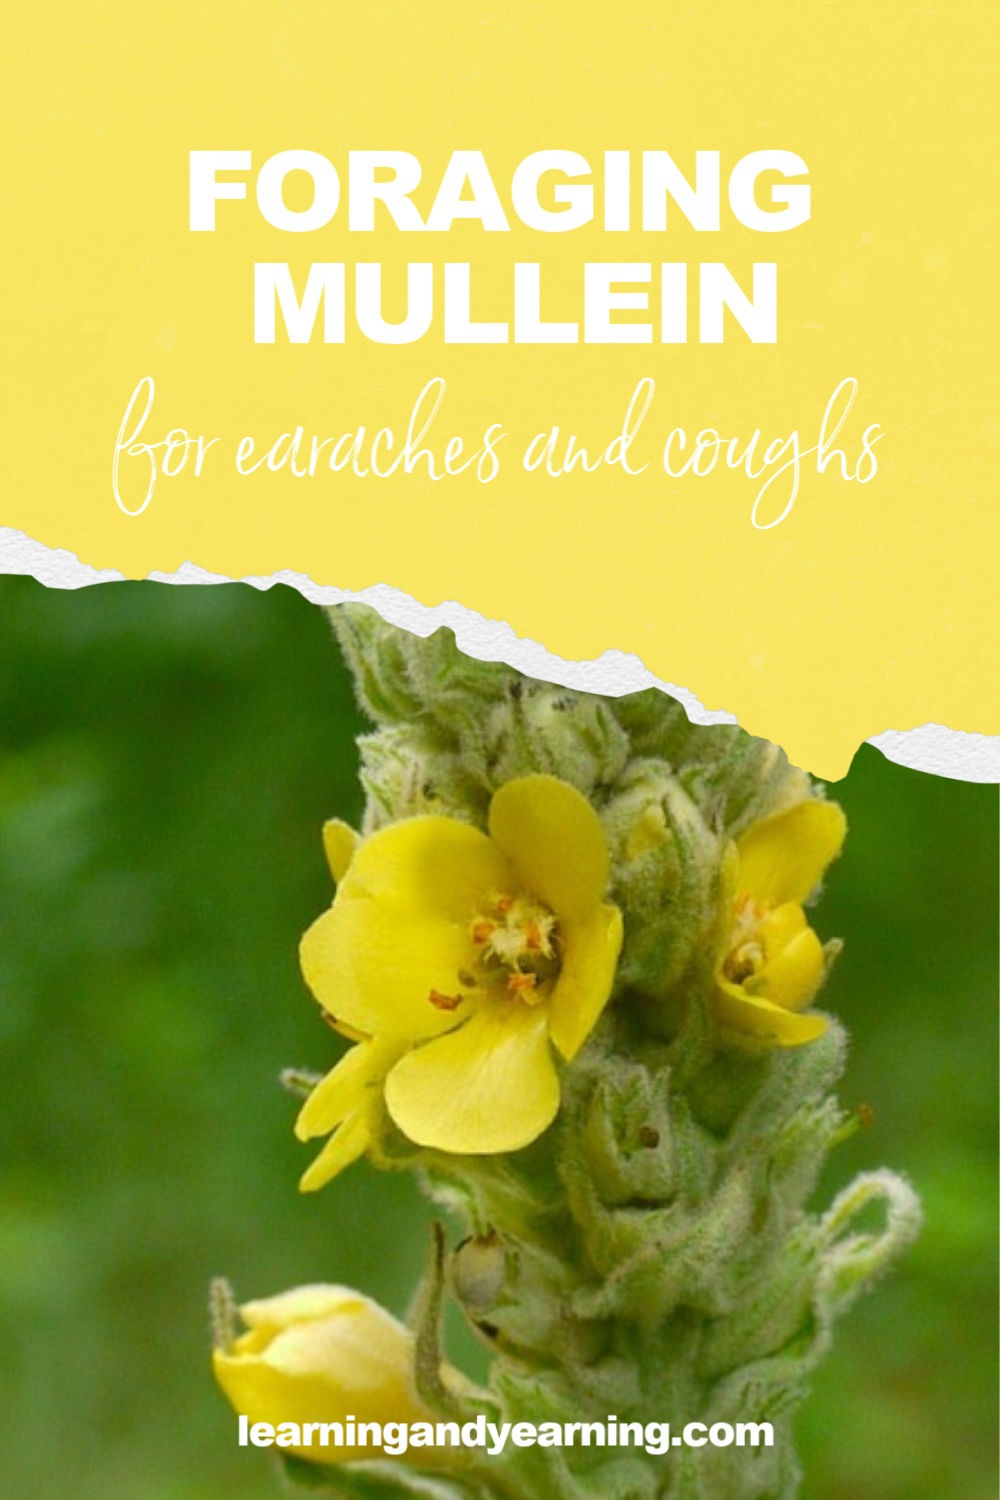 Foraging mullein for earaches and coughs!